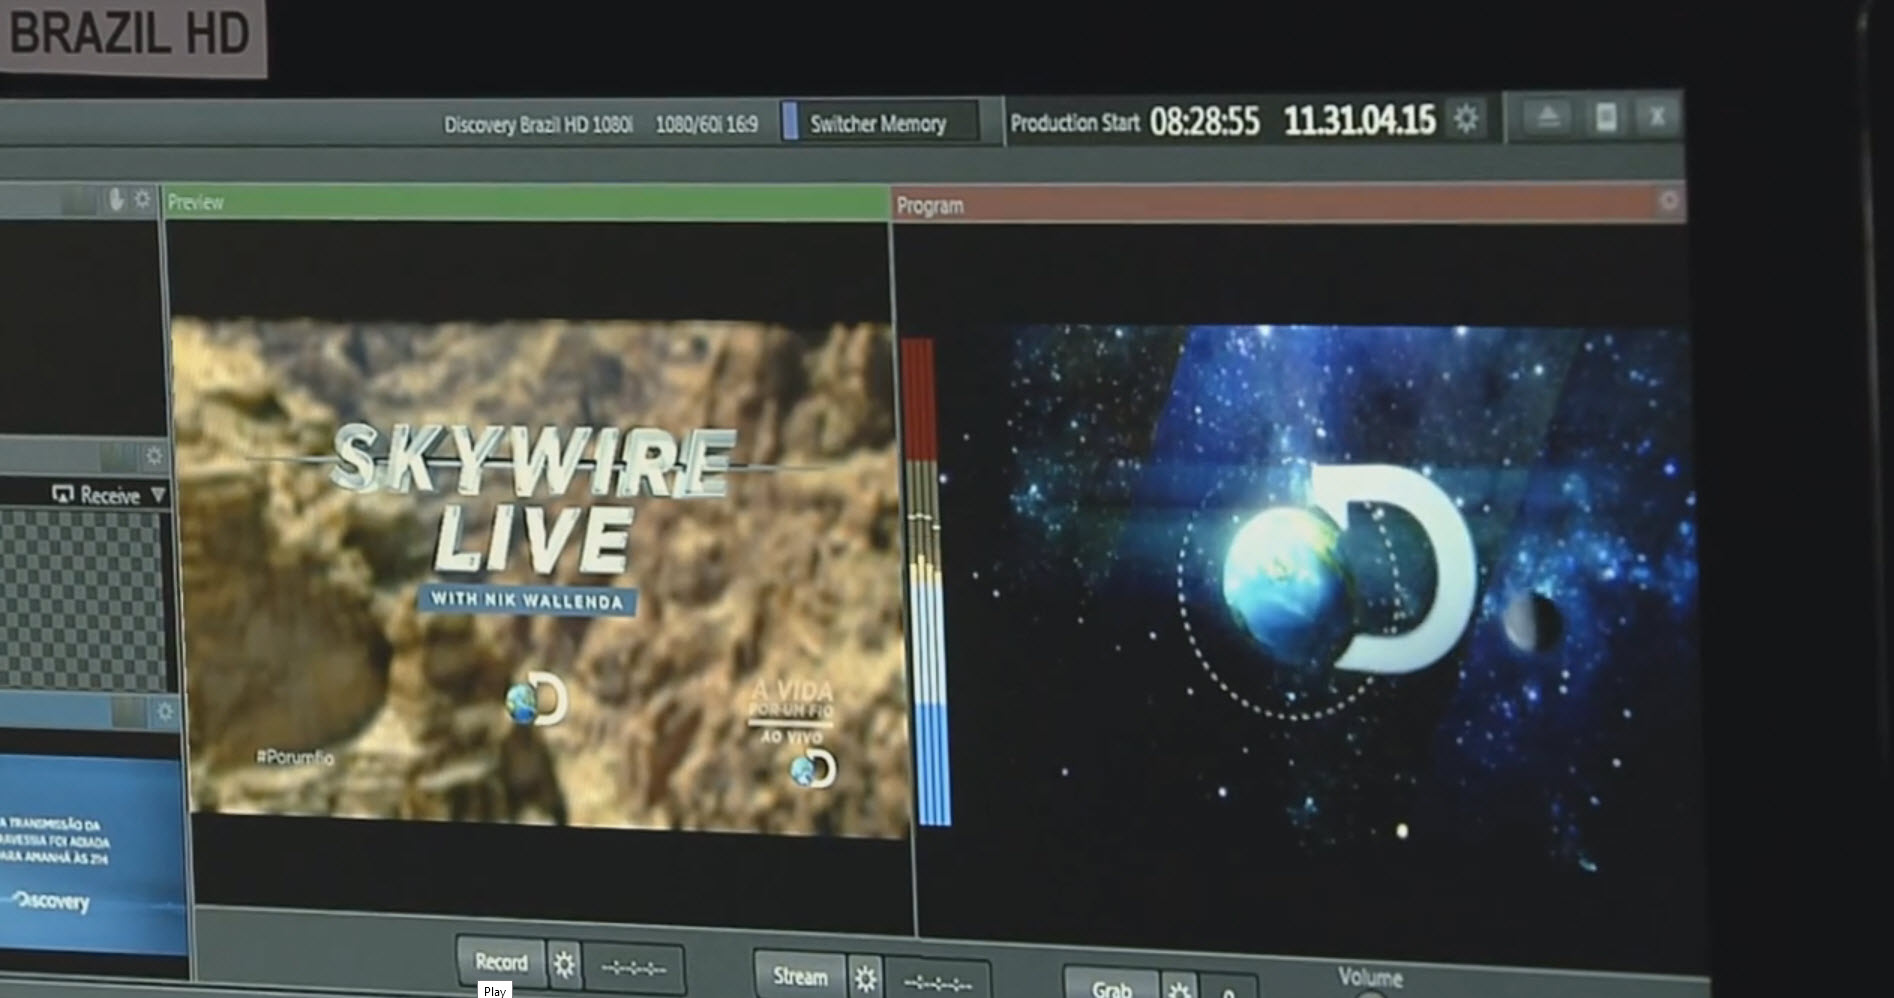 Discovery Channel HD for Brazil included narration and CG text in Portuguese, as well as ad packages specific for the Brazilian audience.  Each of the broadcast streams was similarly customized.